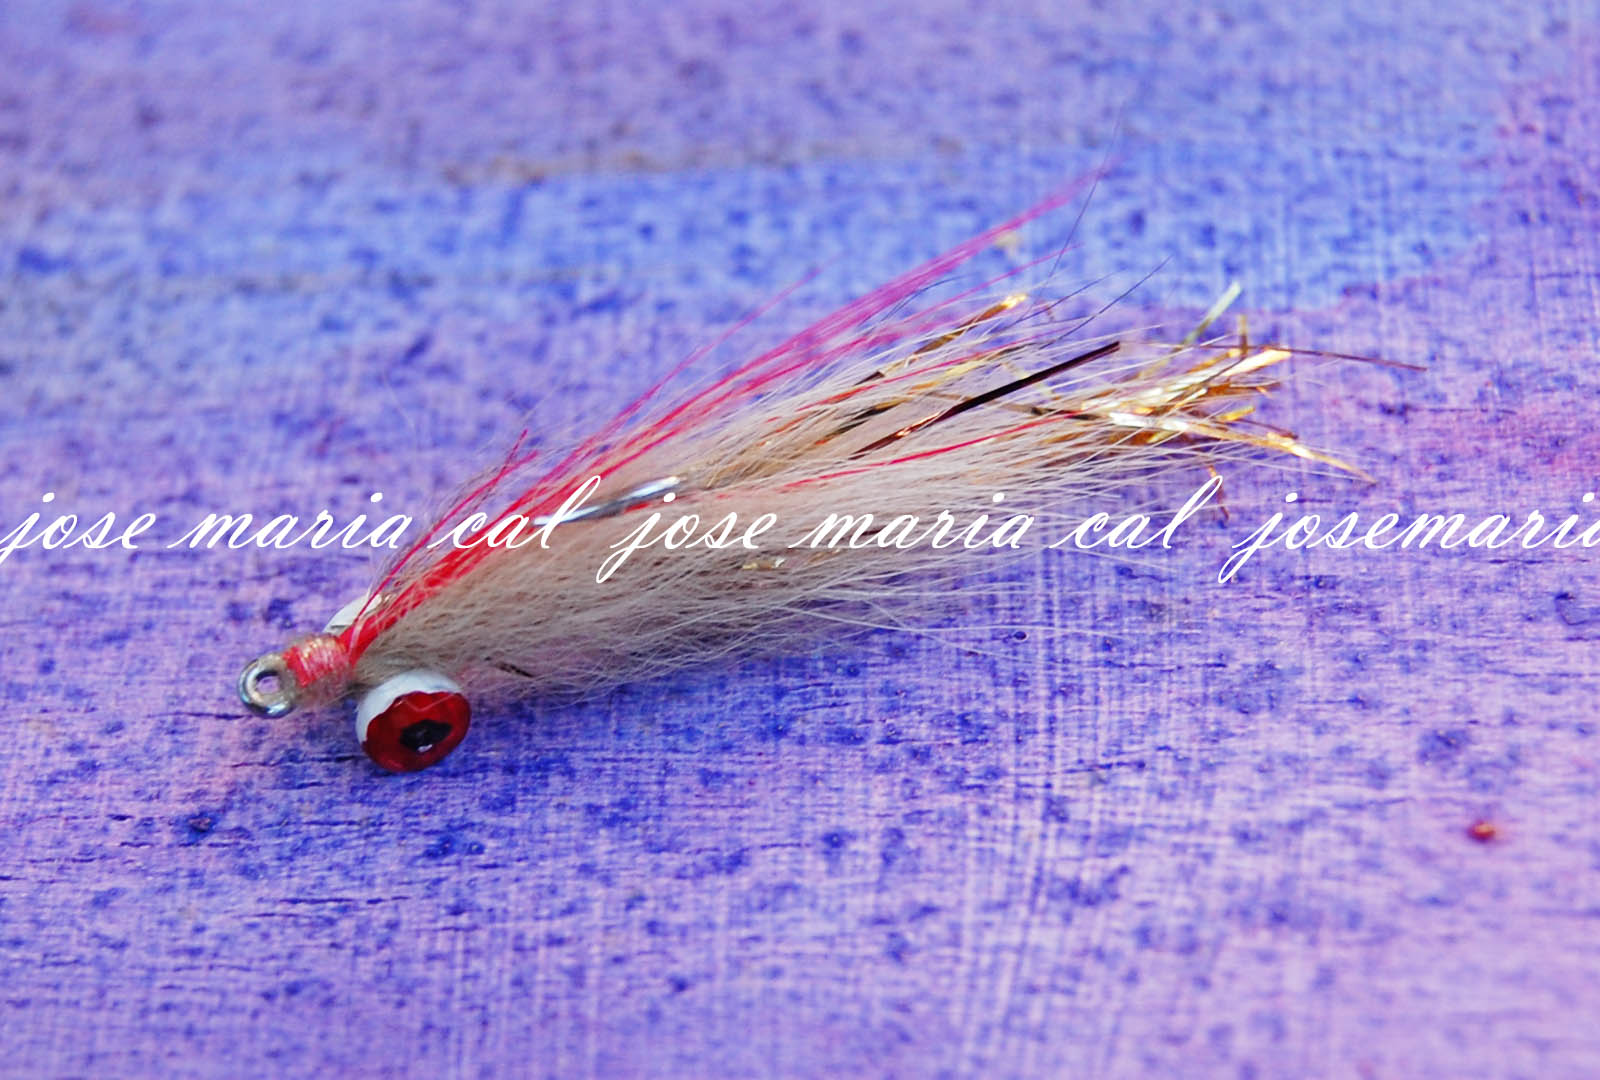 books-josemariacal: Pesca Mar